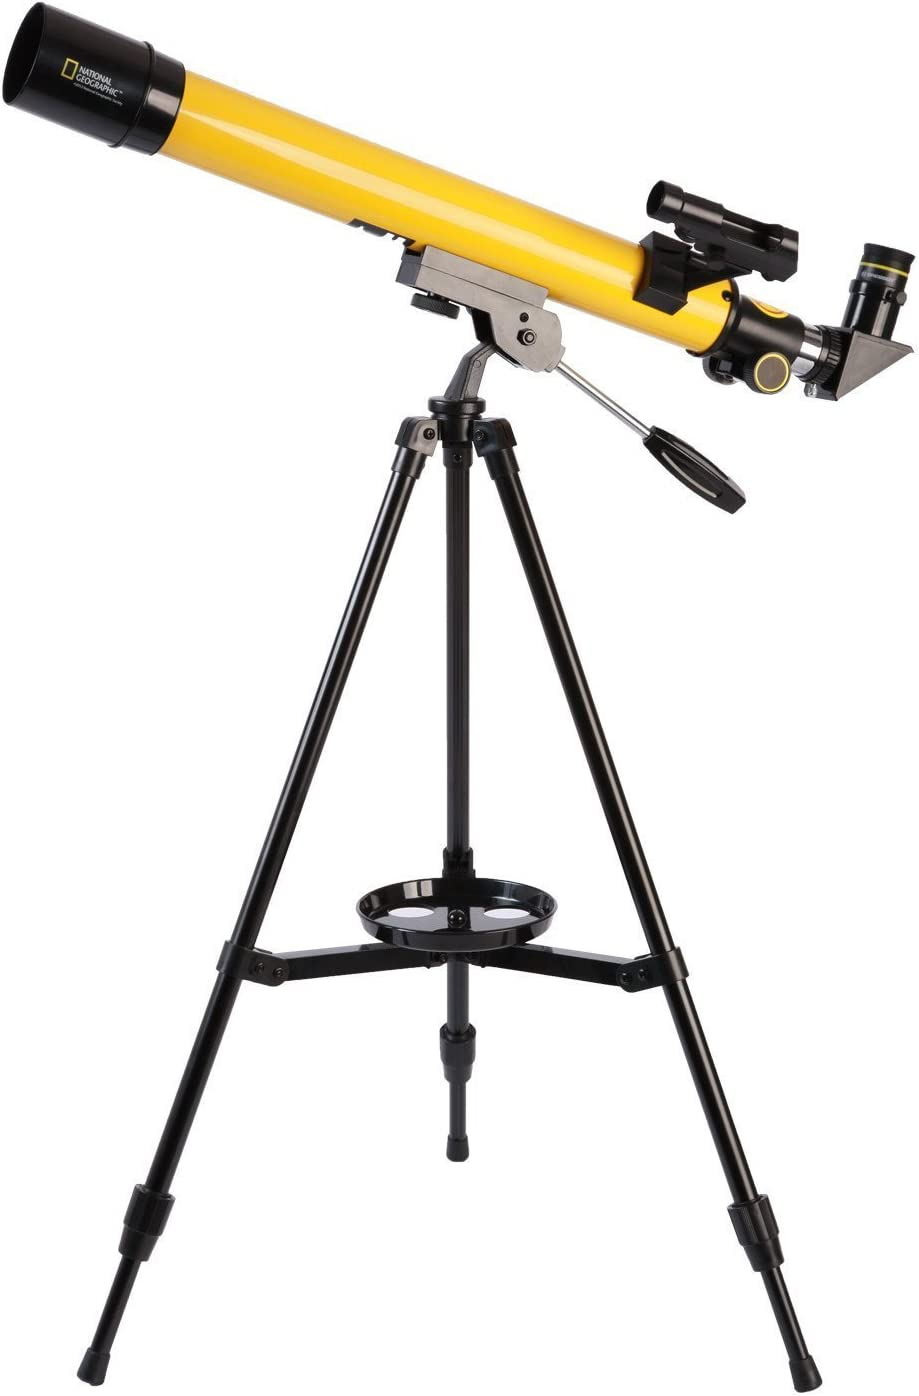 NATIONAL GEOGRAPHIC 50MM Plössl Telescope, Yellow (80-10050)